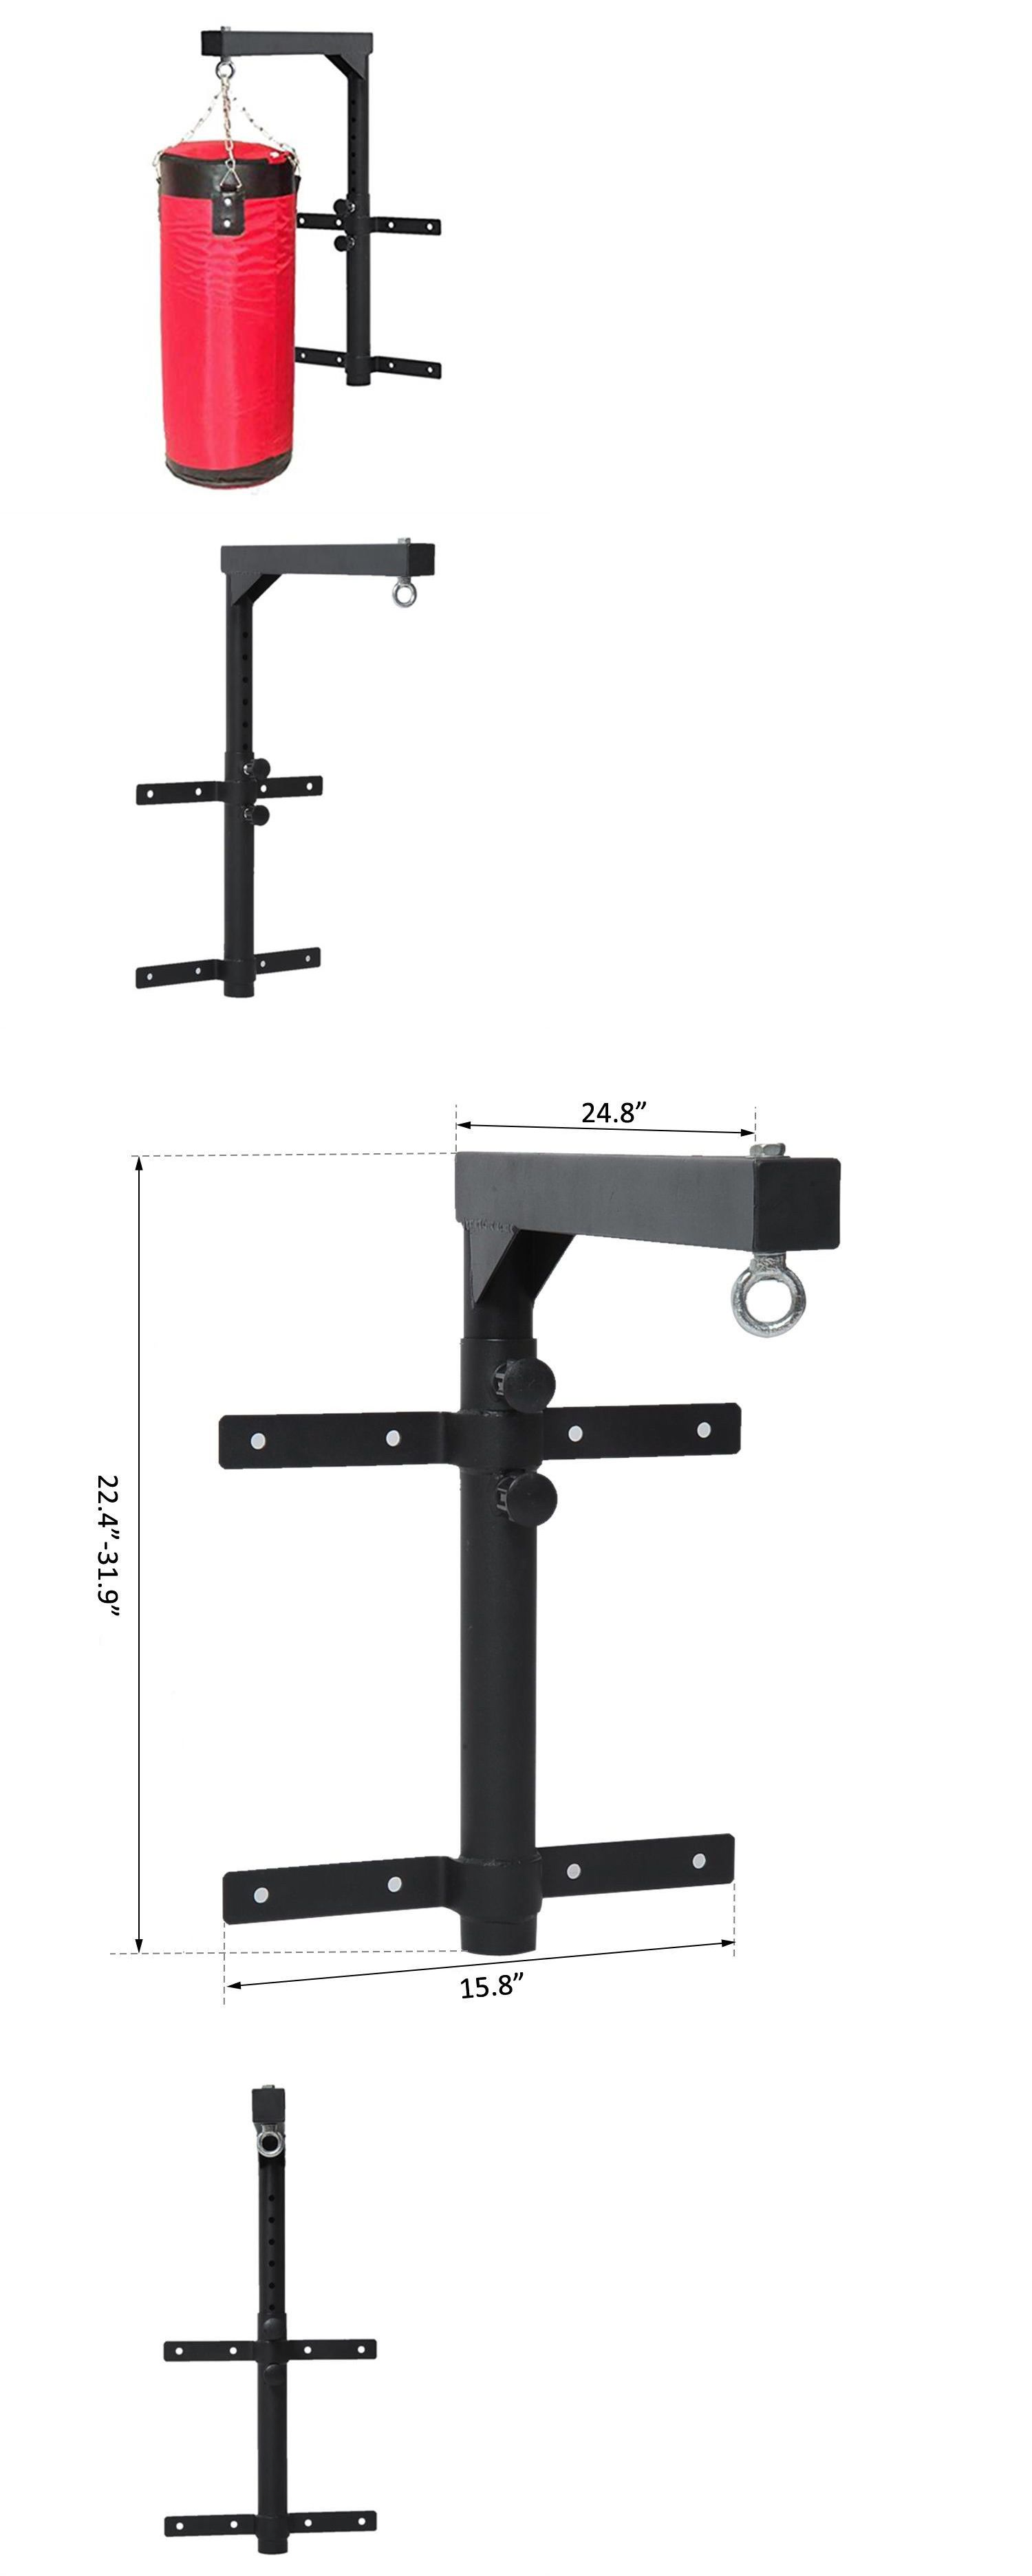 Bag Stands Platforms And Accs 179785 Boxing Punching Bag Wall Mount Hanger Bracket Steel Adjustable Stand Training Us Gym Decor Punching Bag Home Gym Decor